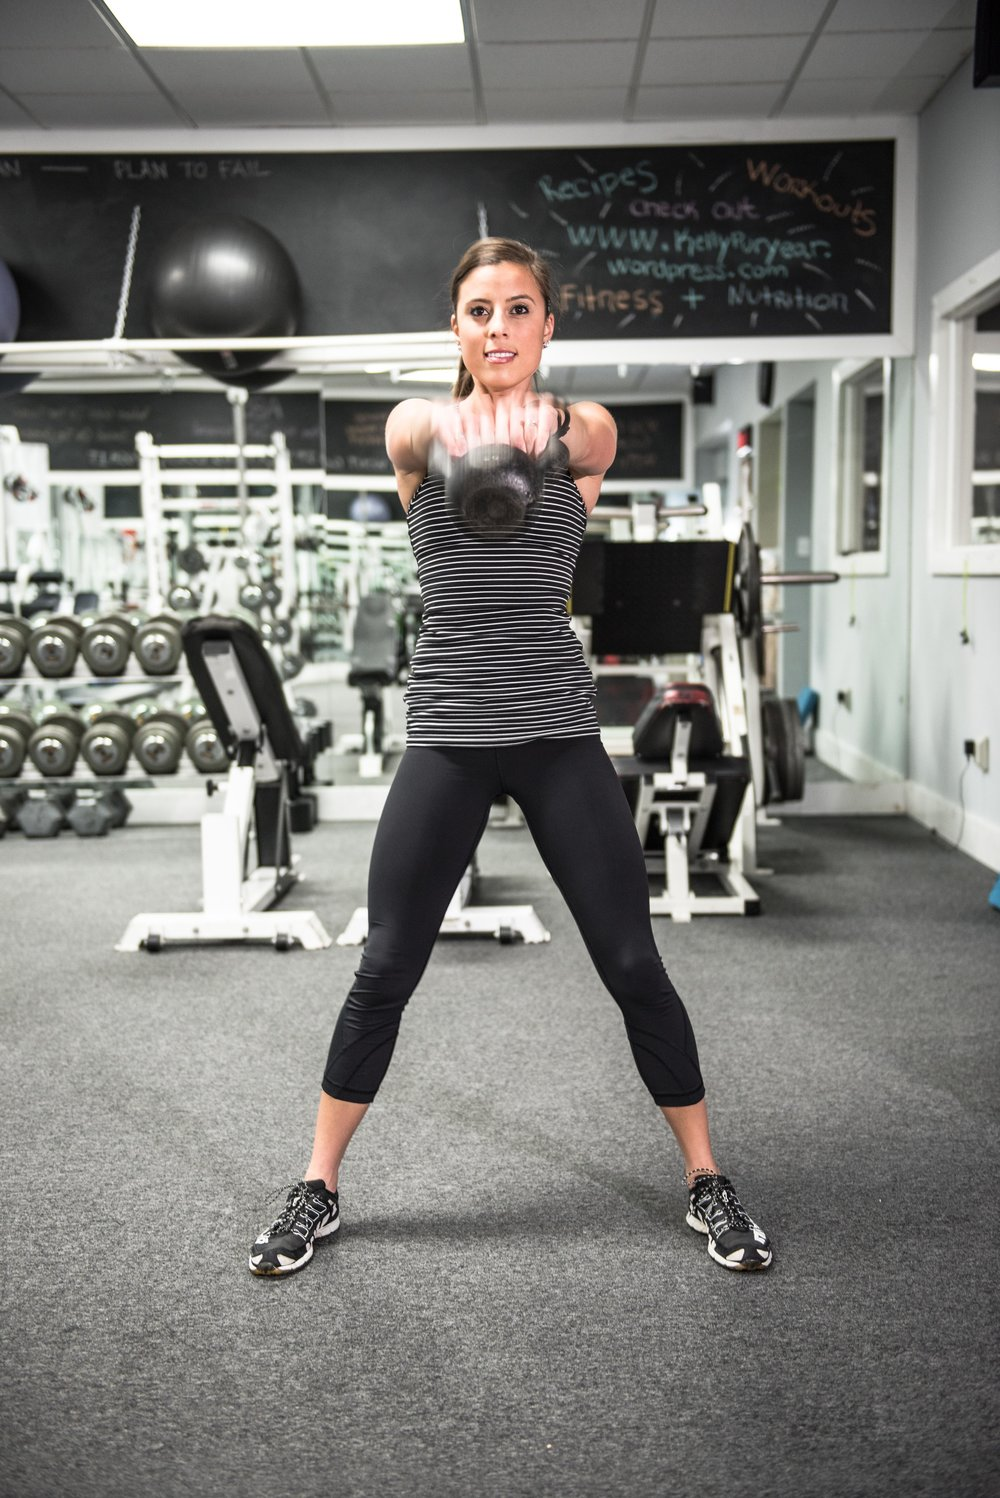 Kettle Bell Full Body Workout